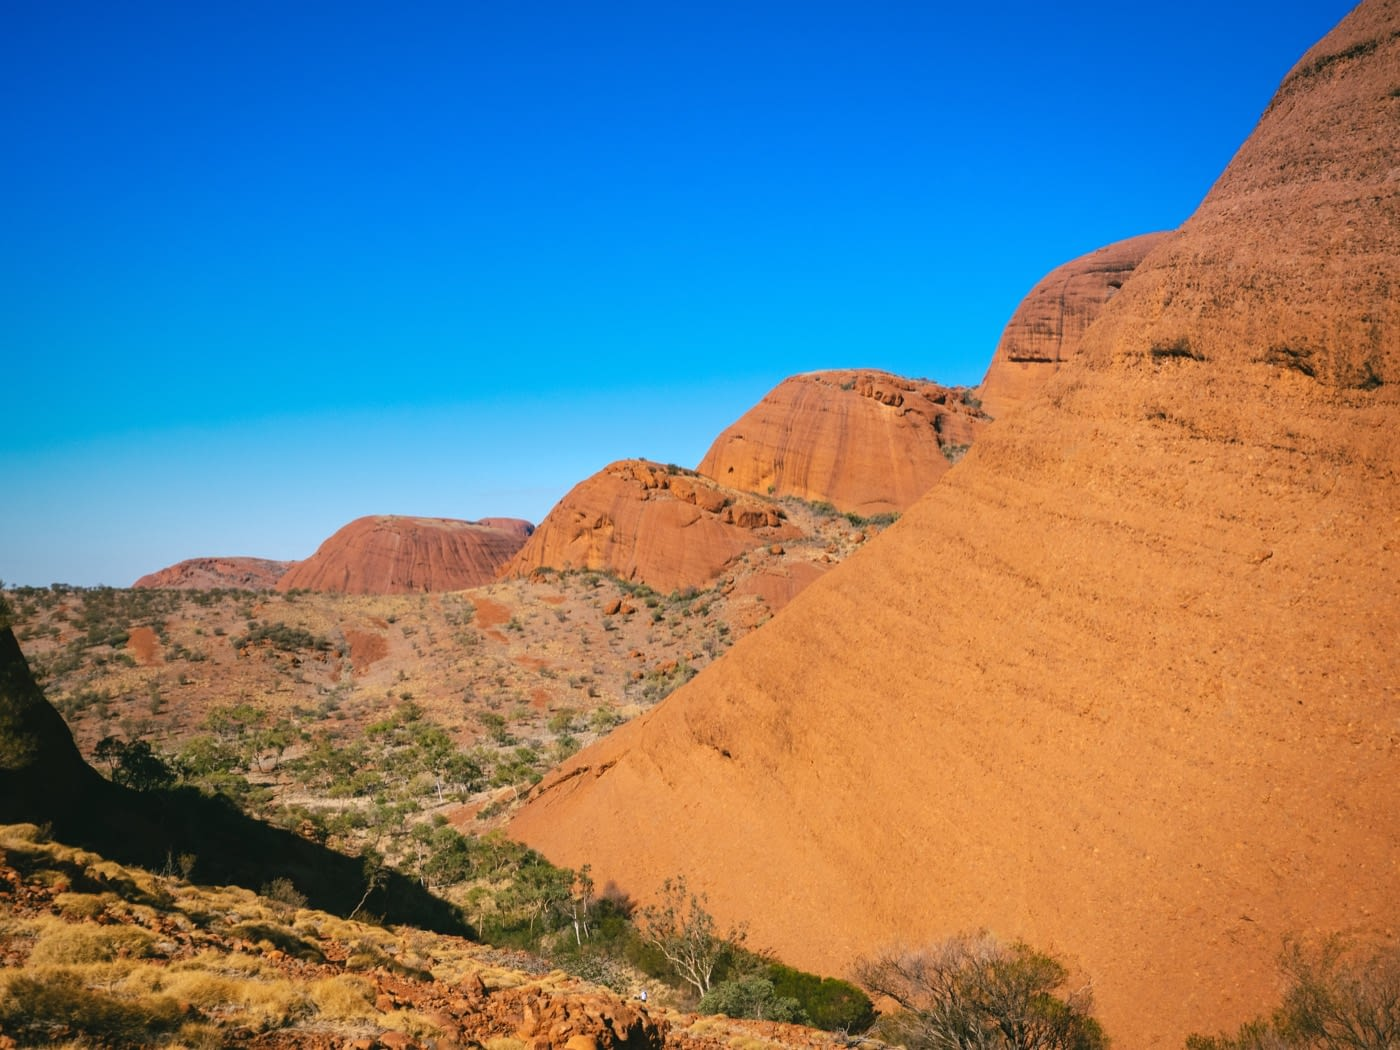 NT Australia - View at Valley of the Wind